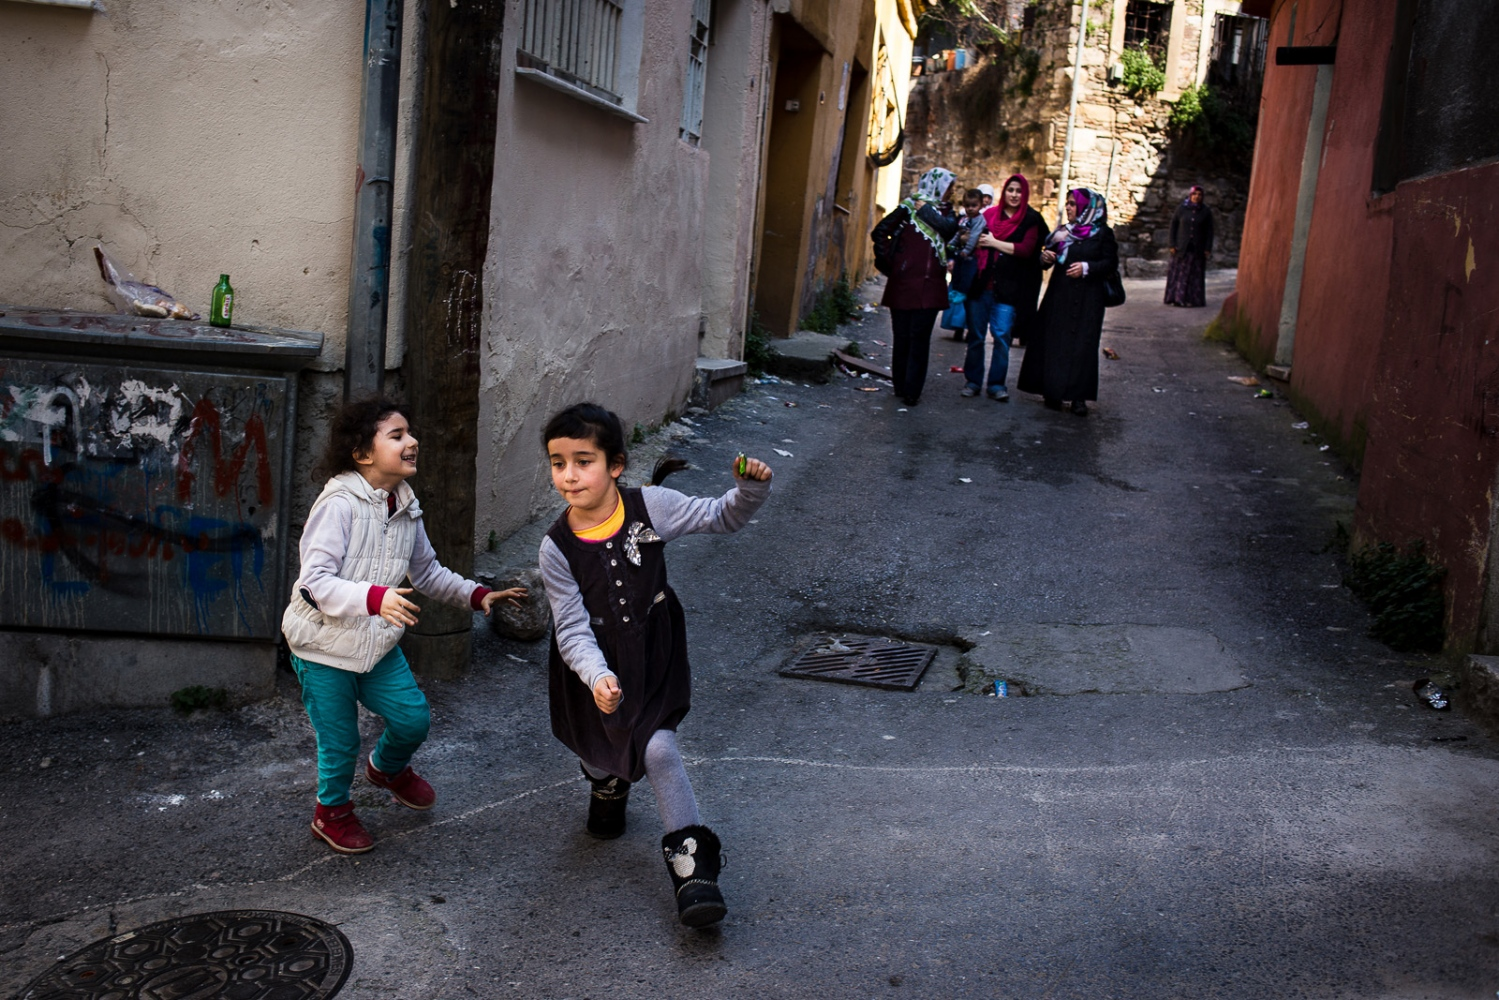 Two young girls chase each other in the Kadifekale neighborhood of Izmir, Turkey. This area of Izmir, a poor area once mostly home to Kurds, is now home to many Syrians coming from Aleppo. For many, Izmir is one of the final stops on the migration route to the European Union.